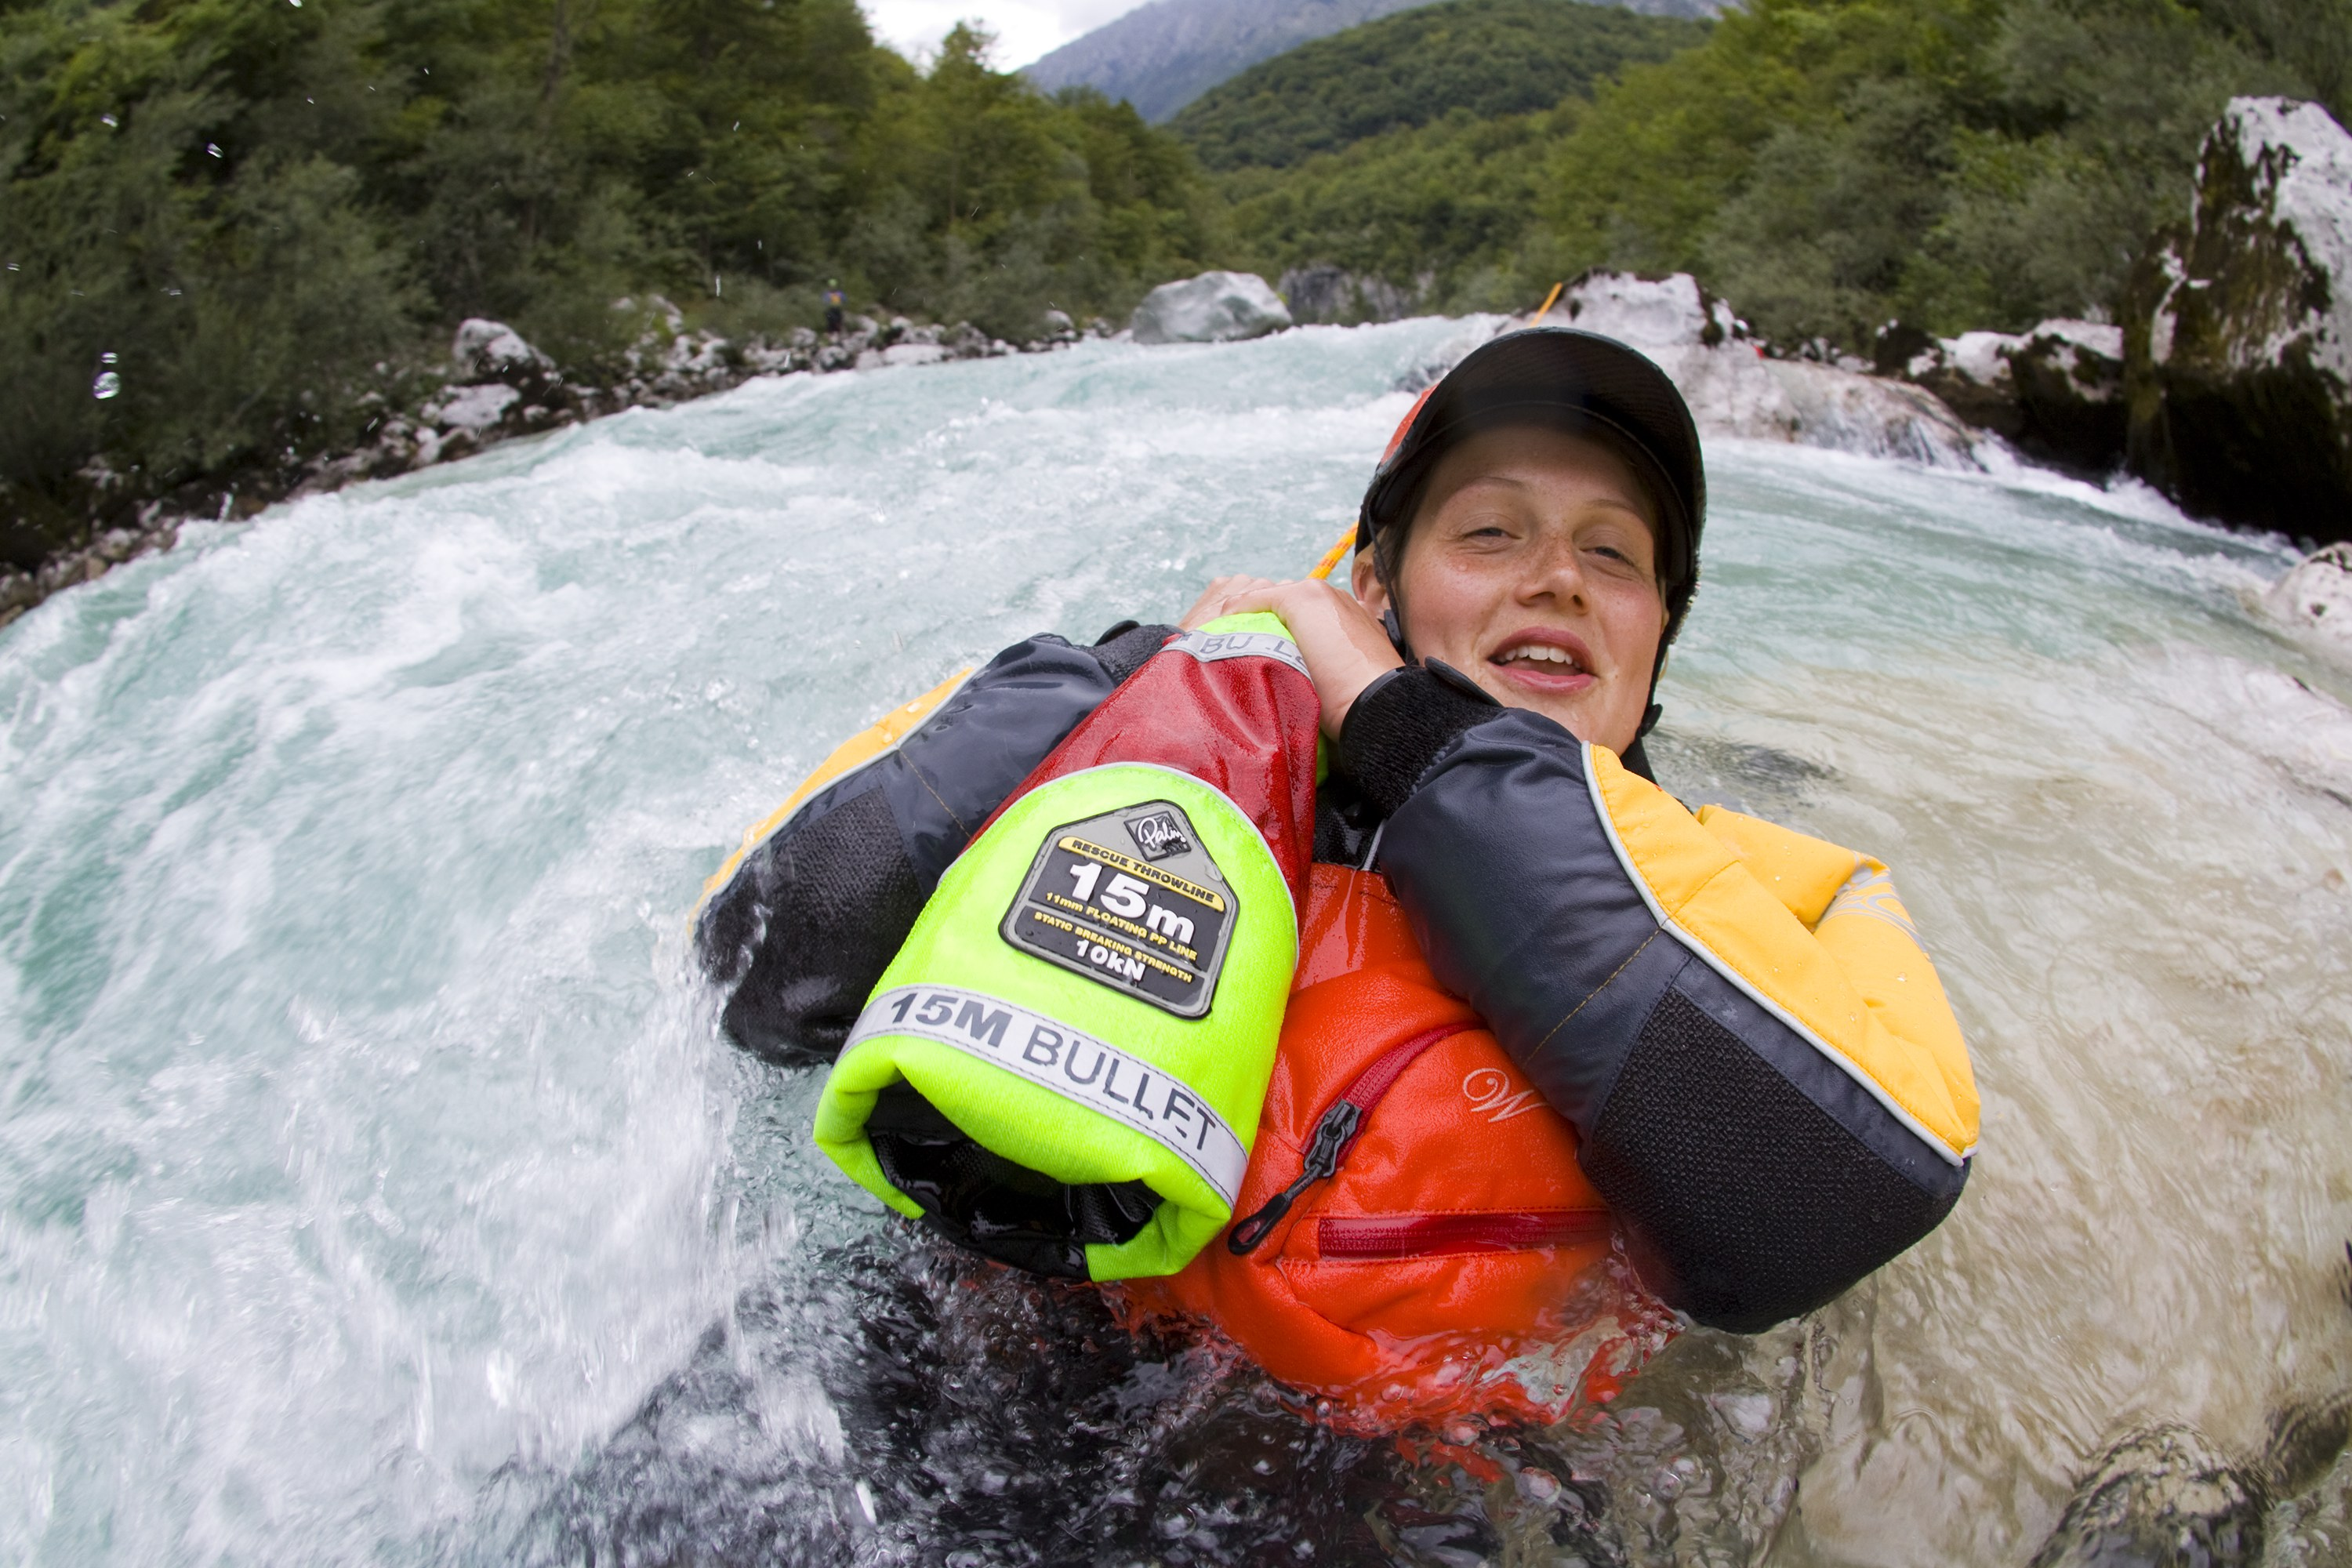 WhiteWaterSafety